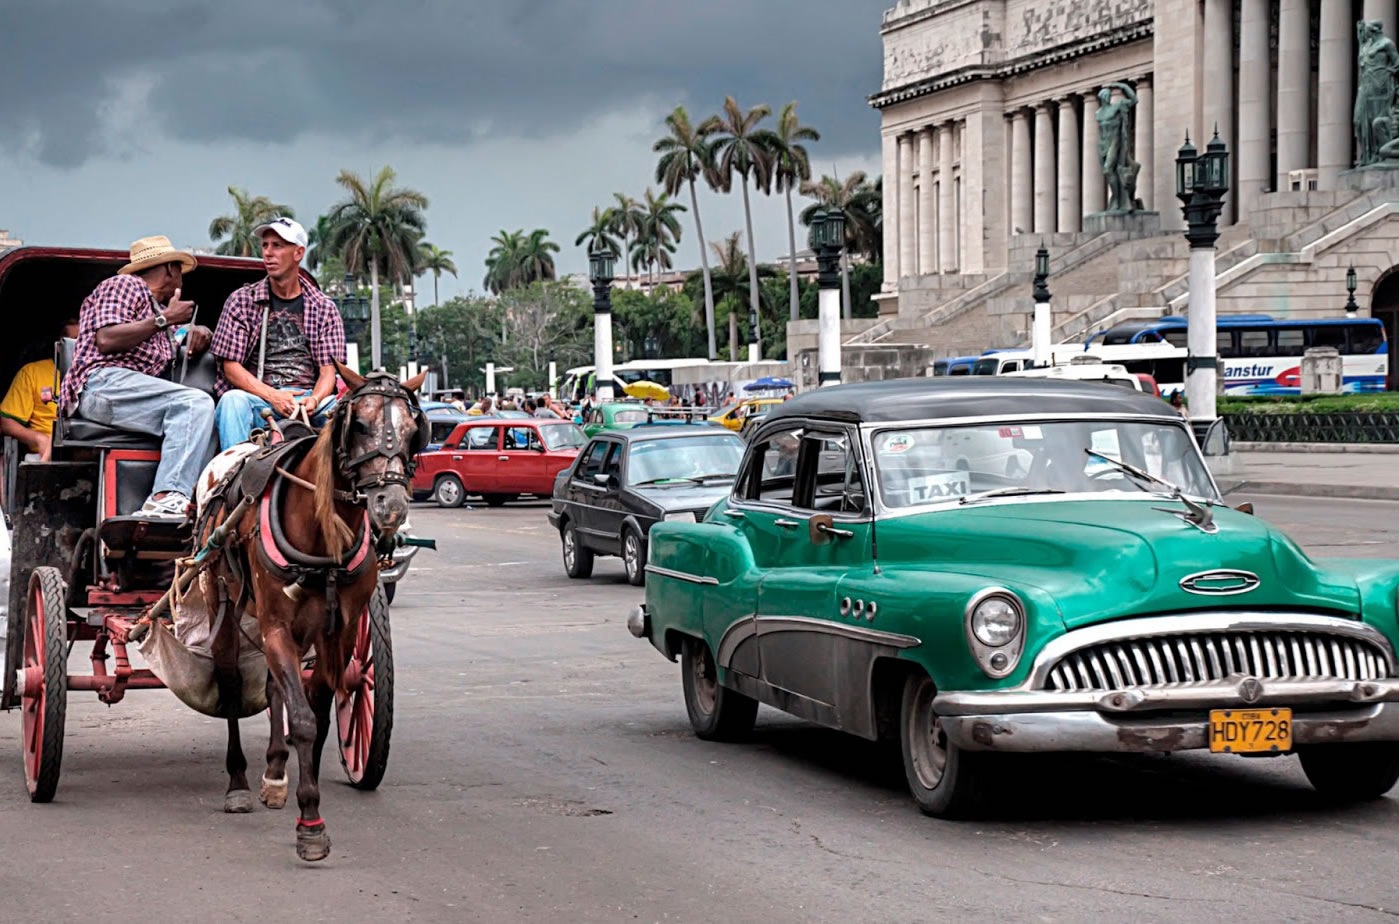 cuba for newsletter now